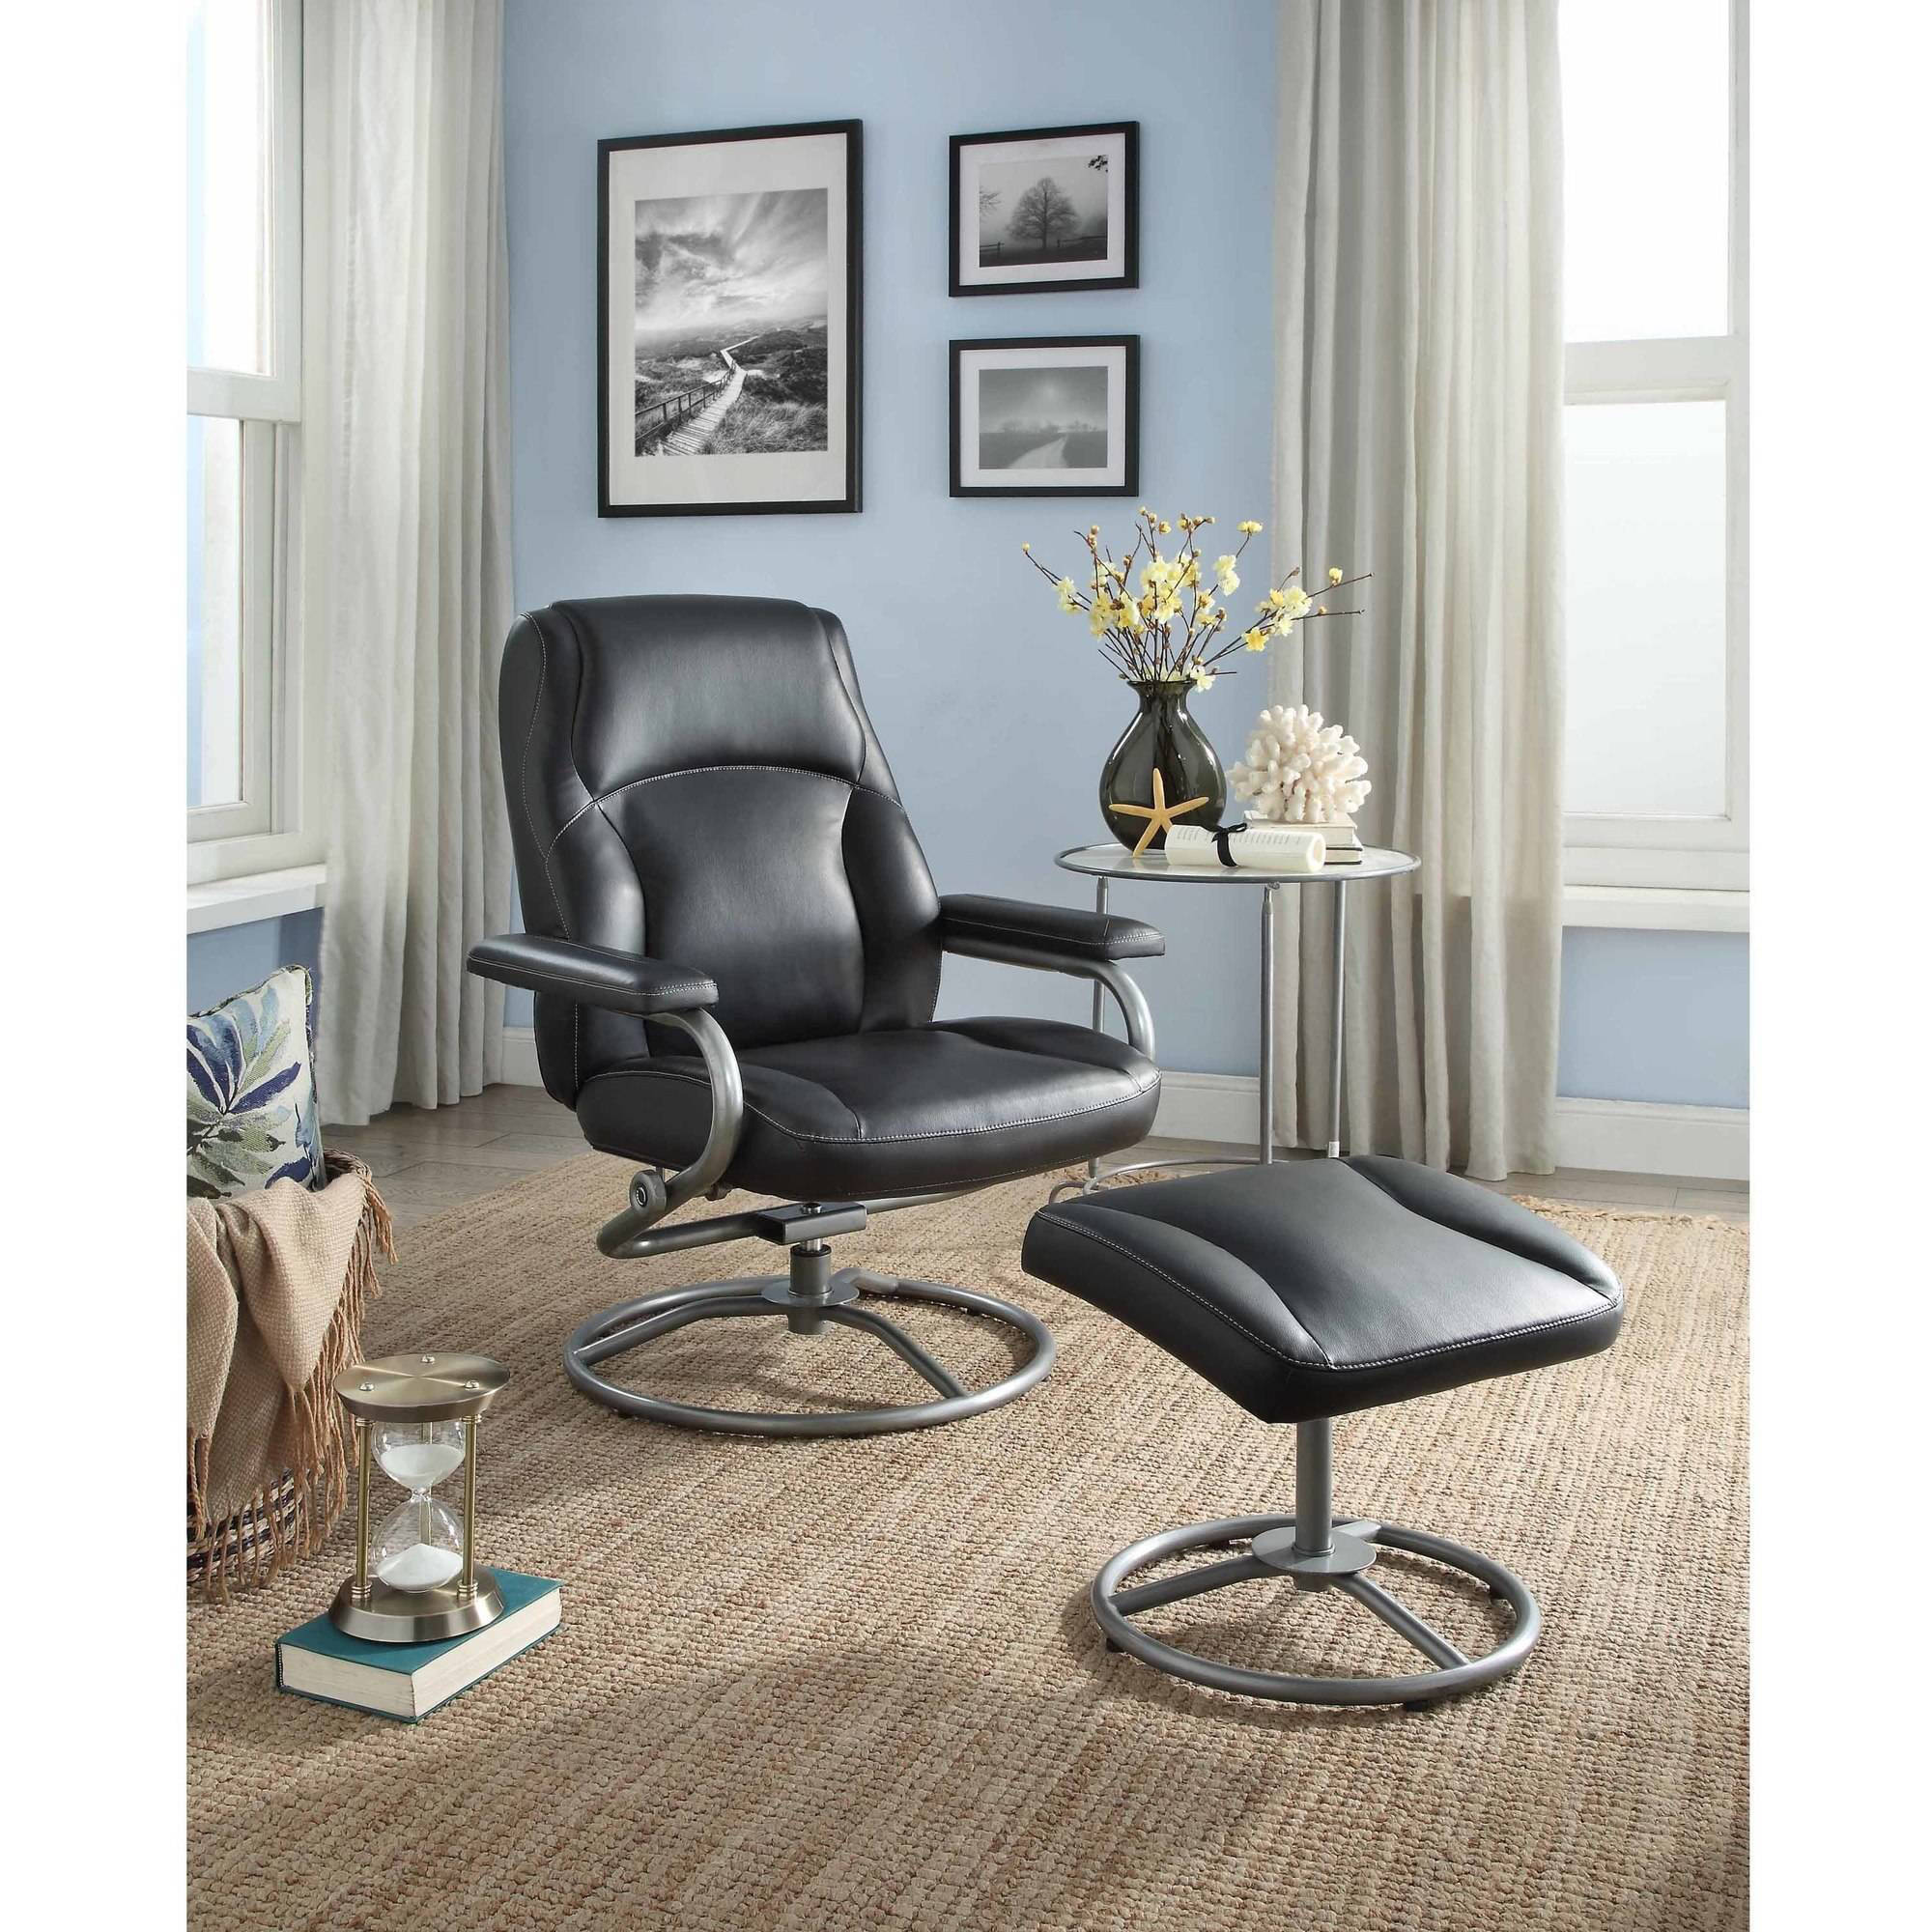 Mainstays plush pillowed recliner swivel chair and ottoman set multiple available colors walmart com